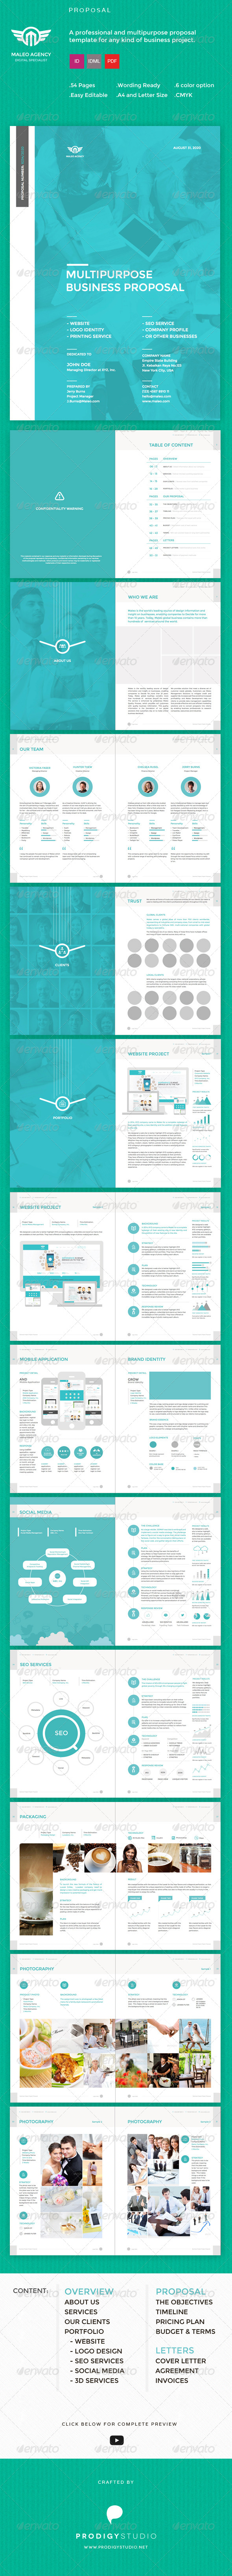 GraphicRiver Maleo Multi Purpose Proposal Template 7562638